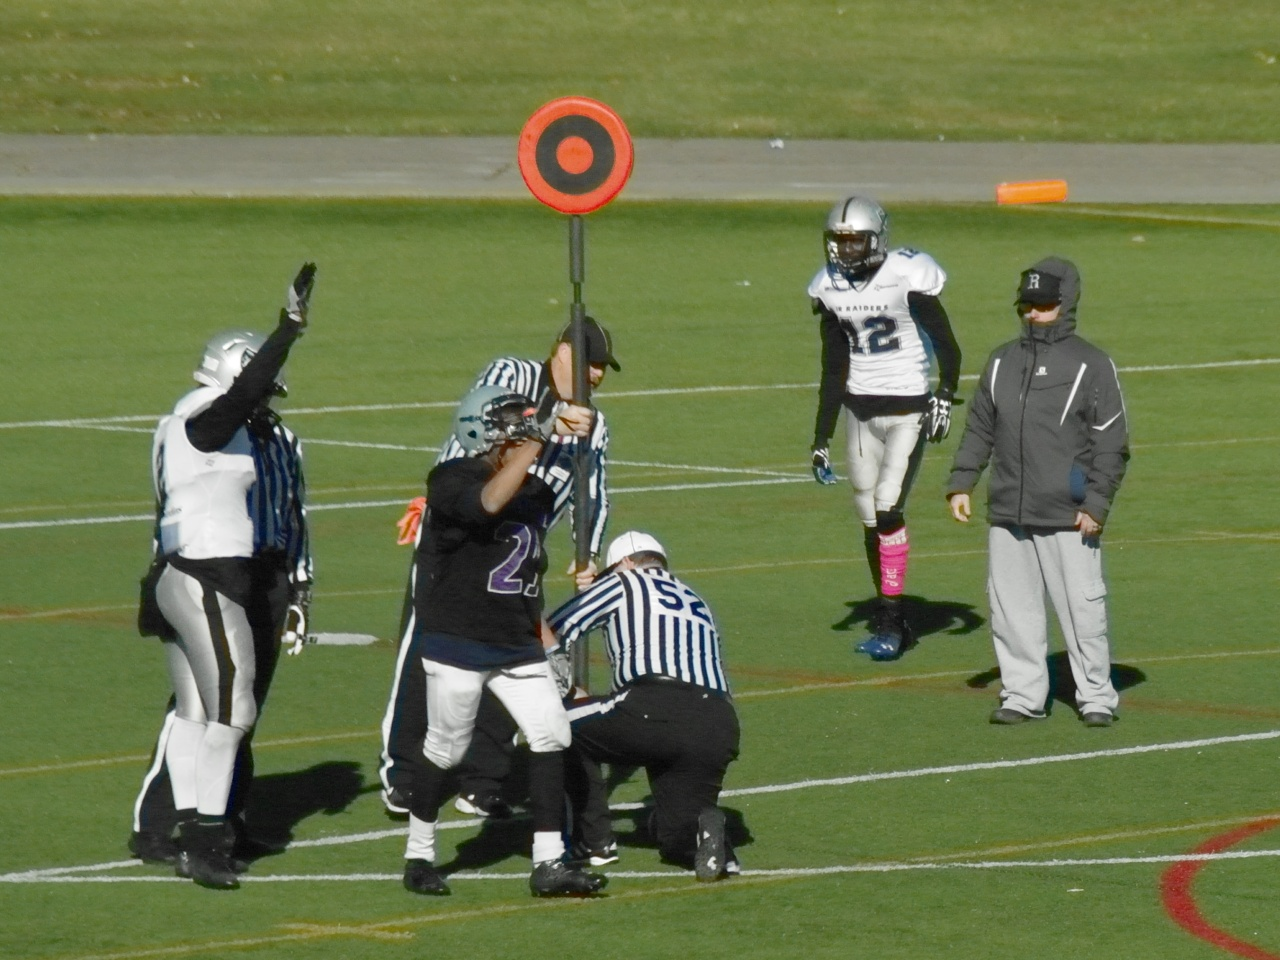 2016-10-23_Raiders_vs_Royals_06